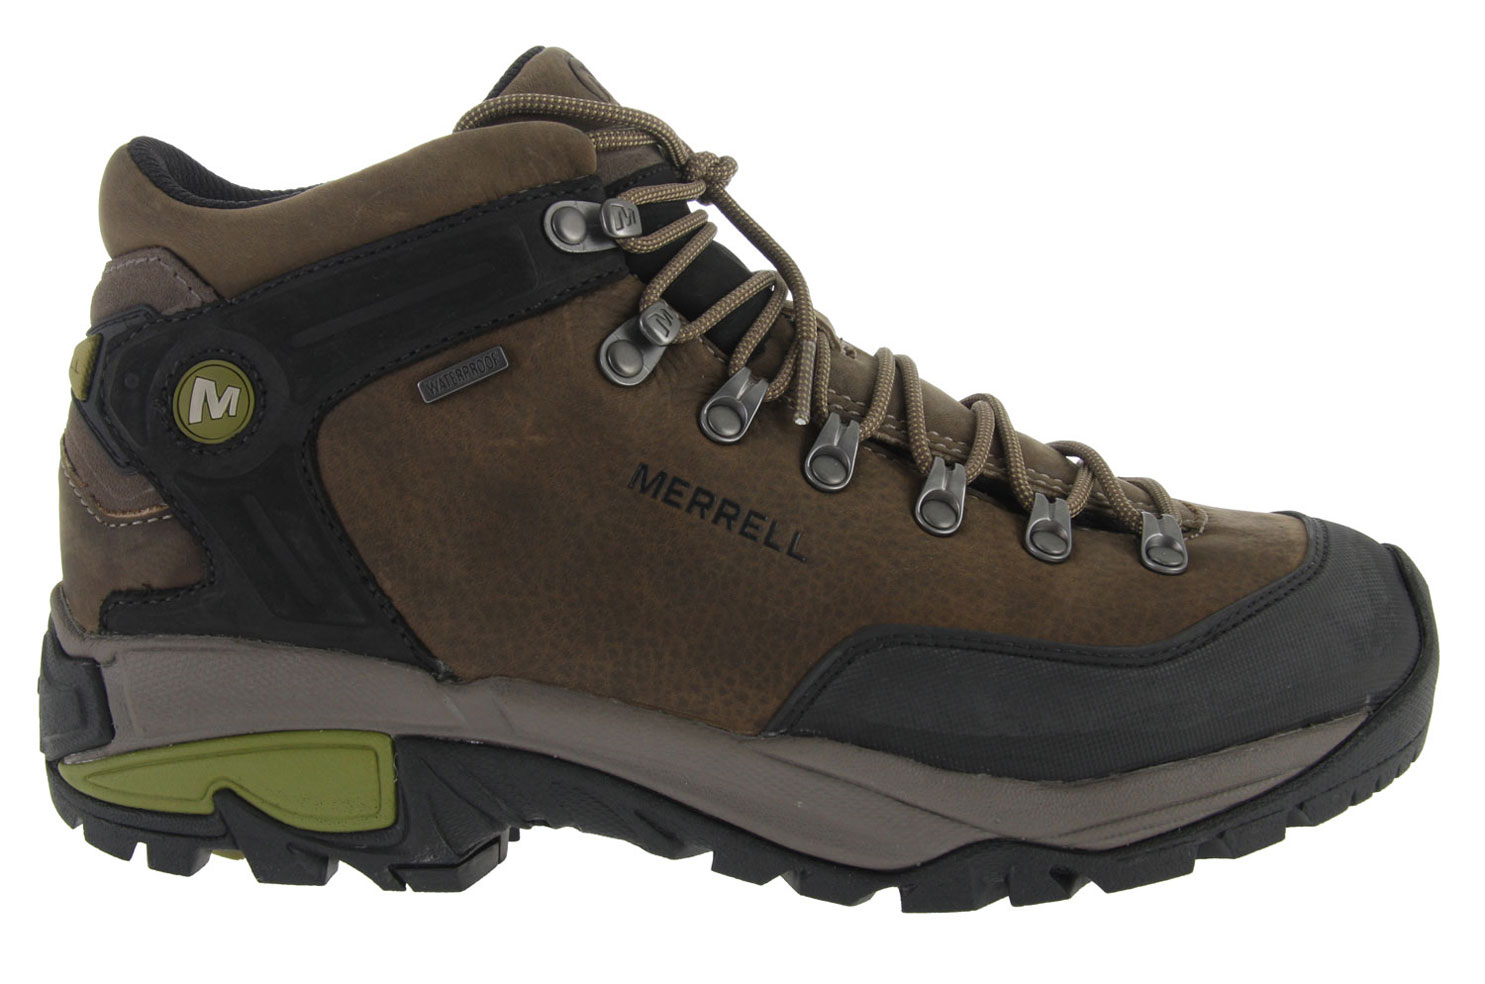 Camp and Hike This lightweight construction, leather backpacker supports every step of your extended treks with Merrell's Trailbound Technology. With the Merrell Col Mid W/P Hiking Shoe they focused Merrell air cushion cushioning under the heel to absorb rough terrain and keep your attention on-trail, along with naturally waterproof leather and hefty 5mm lugs to weather the conditions.Key Features of the Merrell Col Mid W/P Hiking Shoes: Cement construction provides lightweight durability Full grain leather upper Bellows tongue keeps debris out Abrasion resistant rubber toe bumper Waterproof membrane provides impermeable but breathable barrier Ortholite (R) anatomical footbed Grade 4 nylon insole for backpacking with a light pack Molded nylon arch shank Merrell air cushion in the heel absorbs shock and adds stability with an EVA midsole for cushioning Merrell Trailbound Technology midsole provides cushioned support that's durable over rough terrain 5 mm sole lug depth Vibram Col outsole/ TC5+ Sticky rubber Compound - $96.95